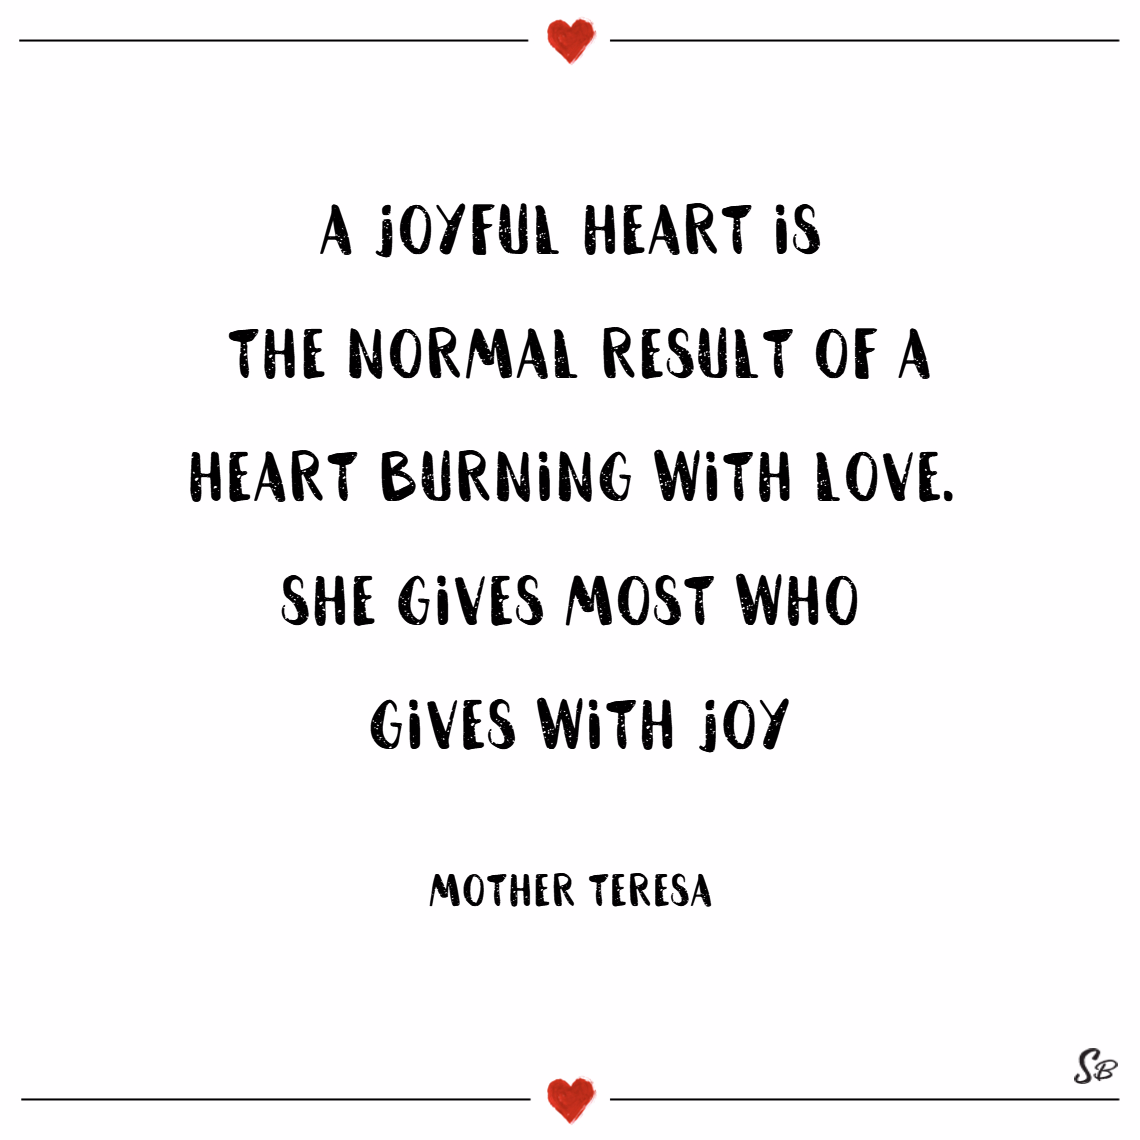 A joyful heart is the normal result of a heart burning with love. she gives most who gives with joy. – mother teresa